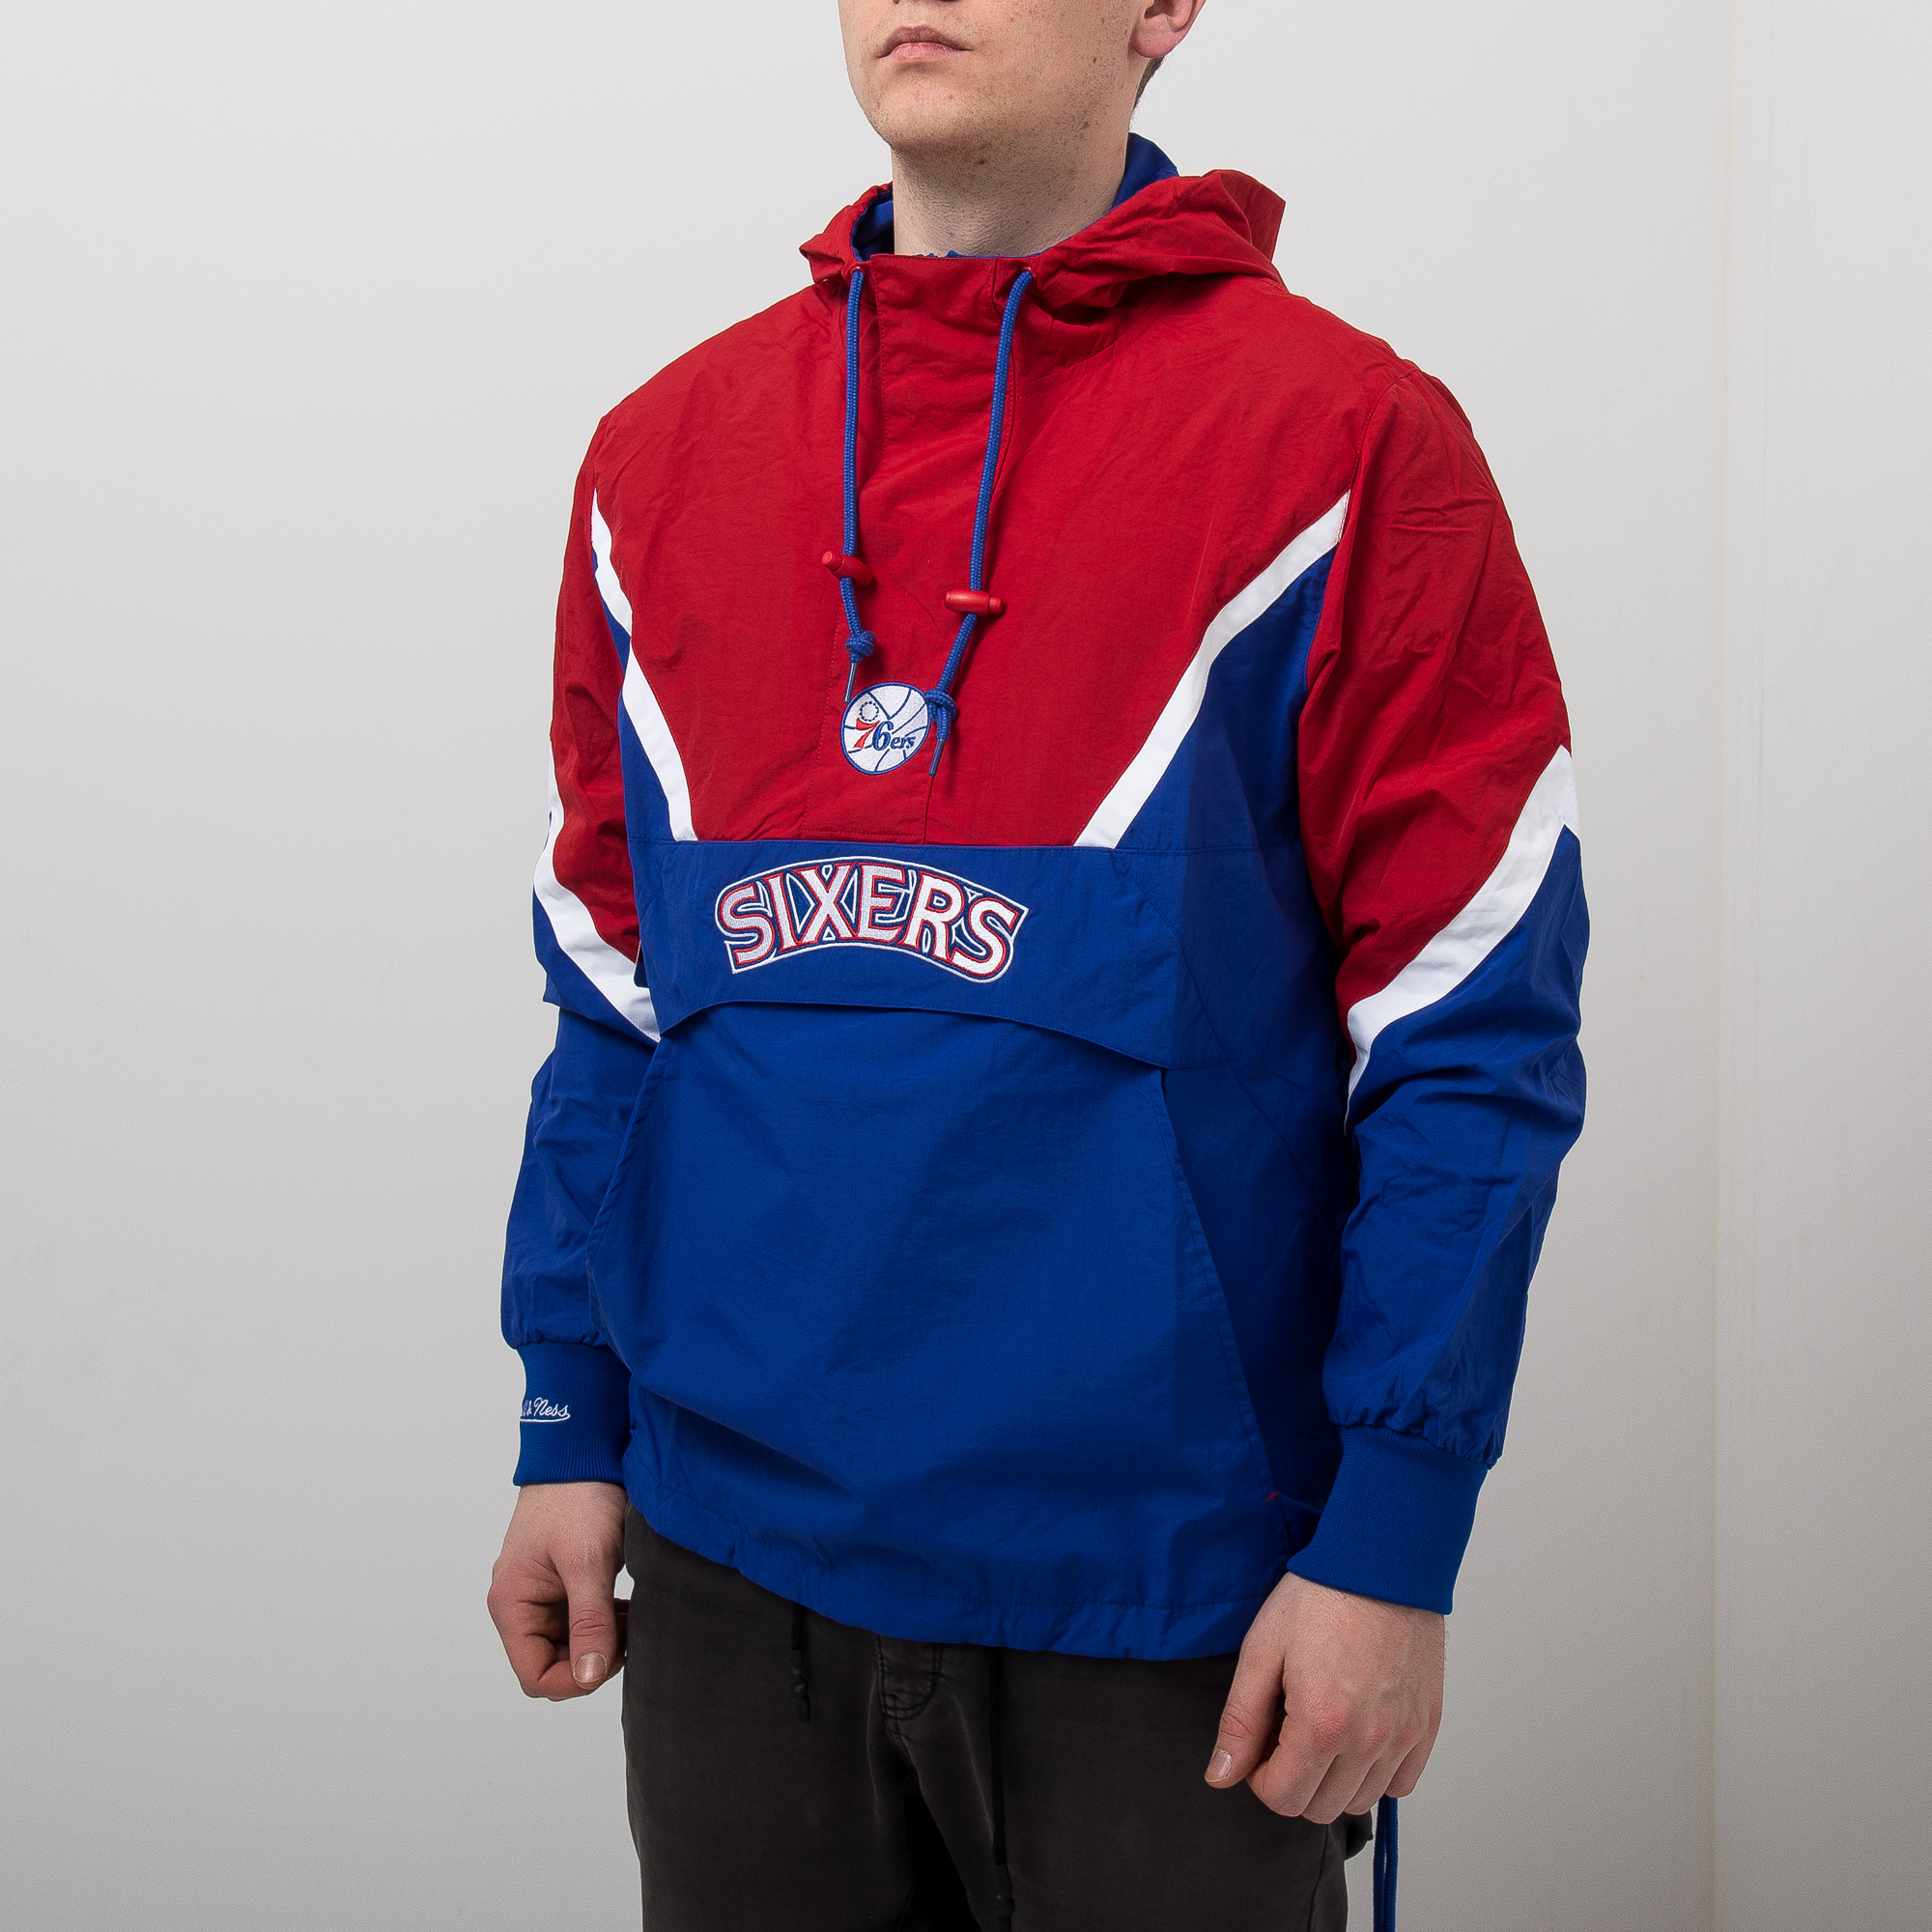 d589bc60554 Mitchell & Ness NBA Philadelphia 76ers Half Zip Anorak Jacket - NBA Shop  Philadelphia 76ers Merchandise - Superfanas.lt